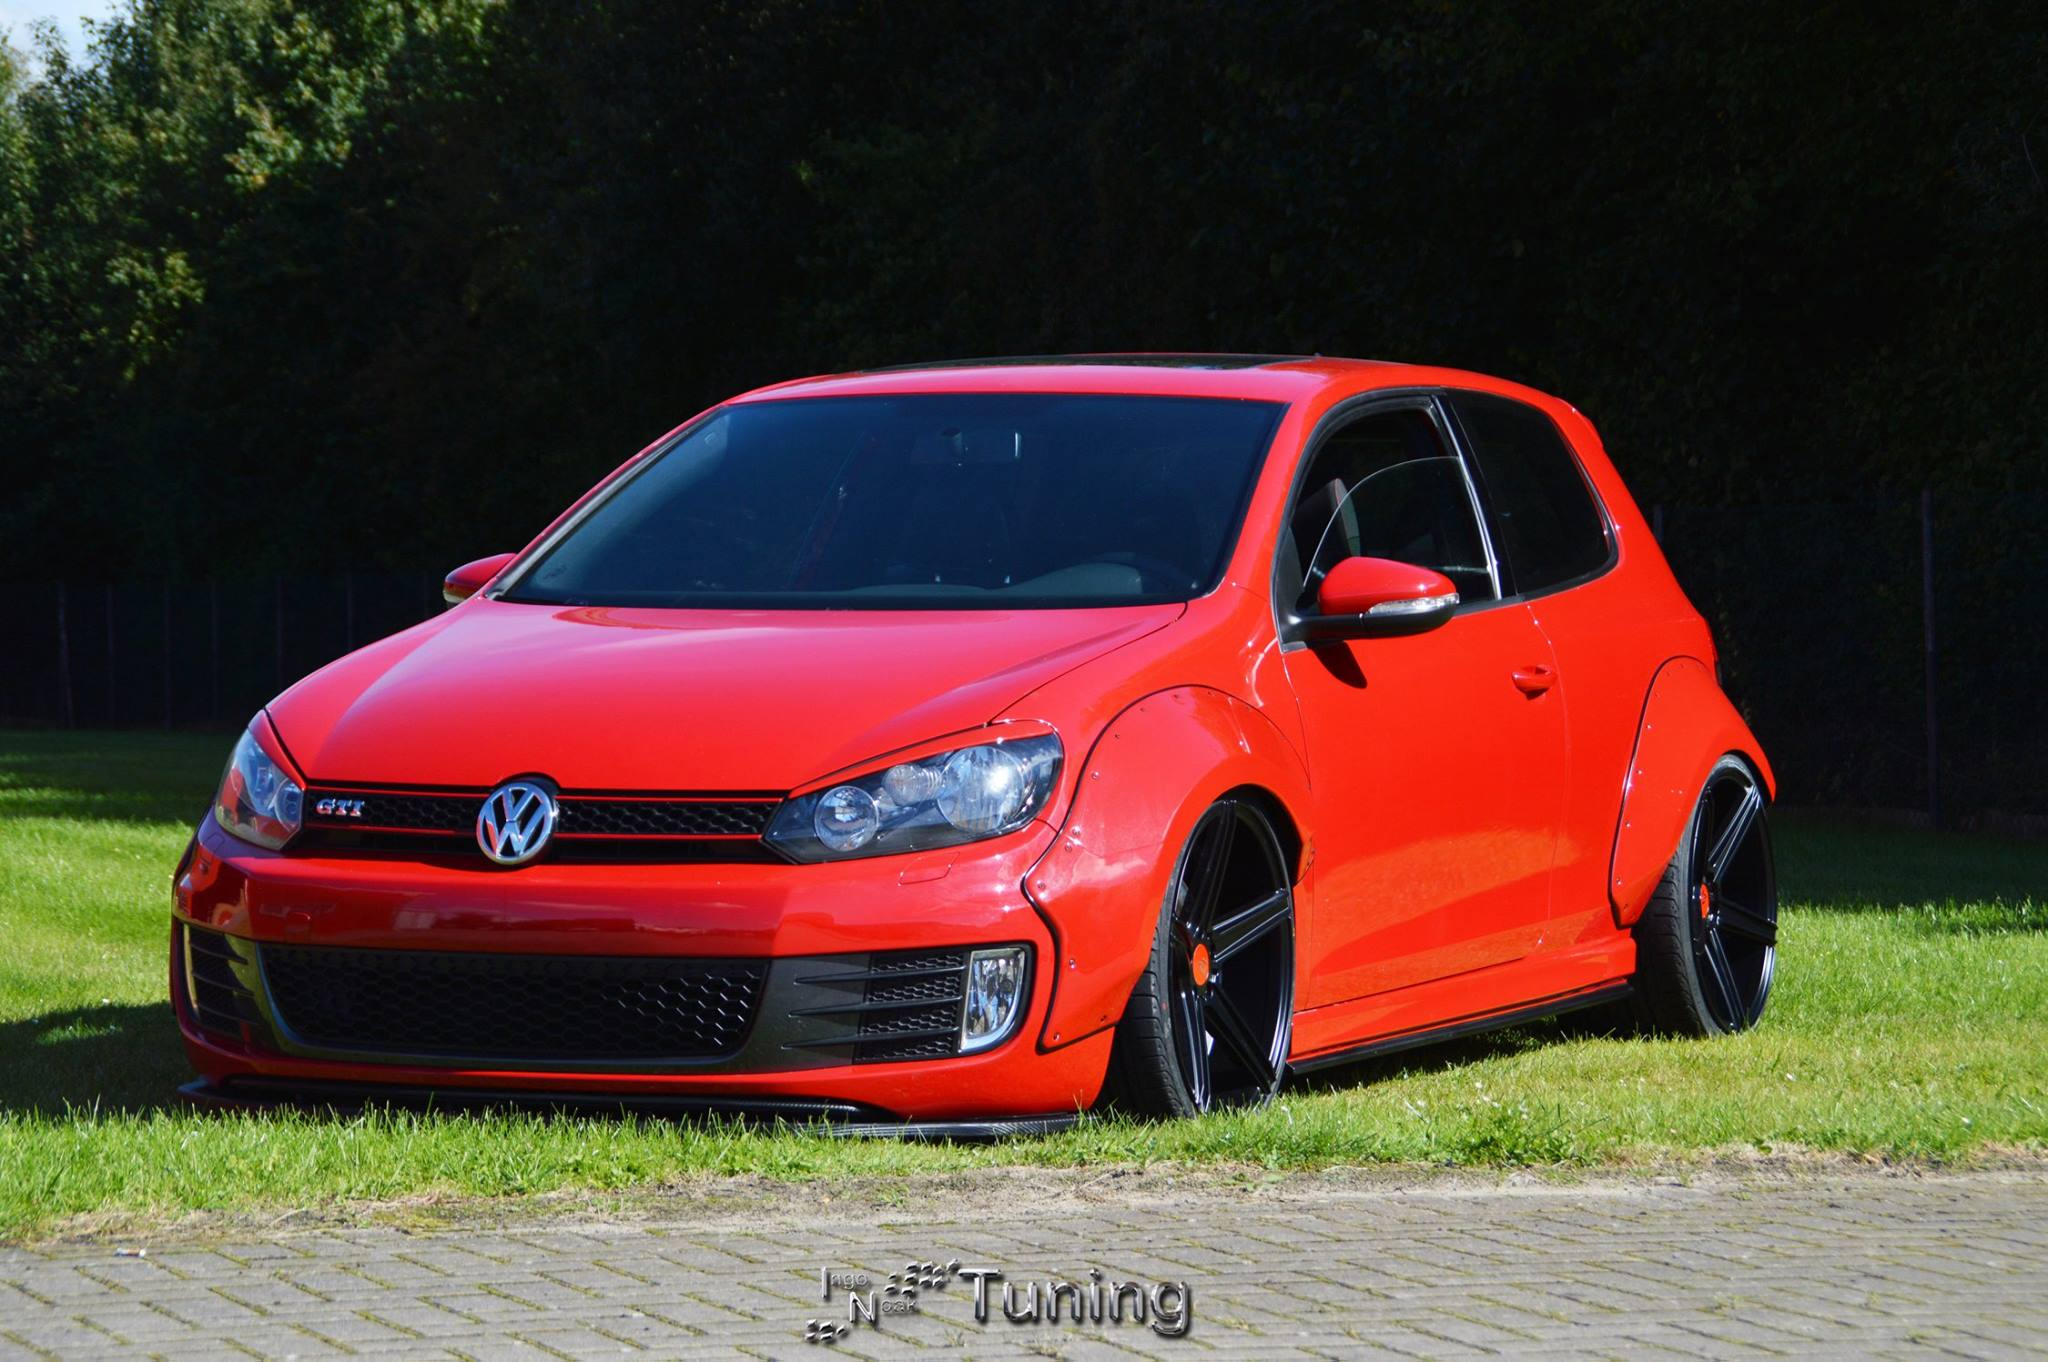 golf 6 gti gets widebody kit from ingo noak the european. Black Bedroom Furniture Sets. Home Design Ideas